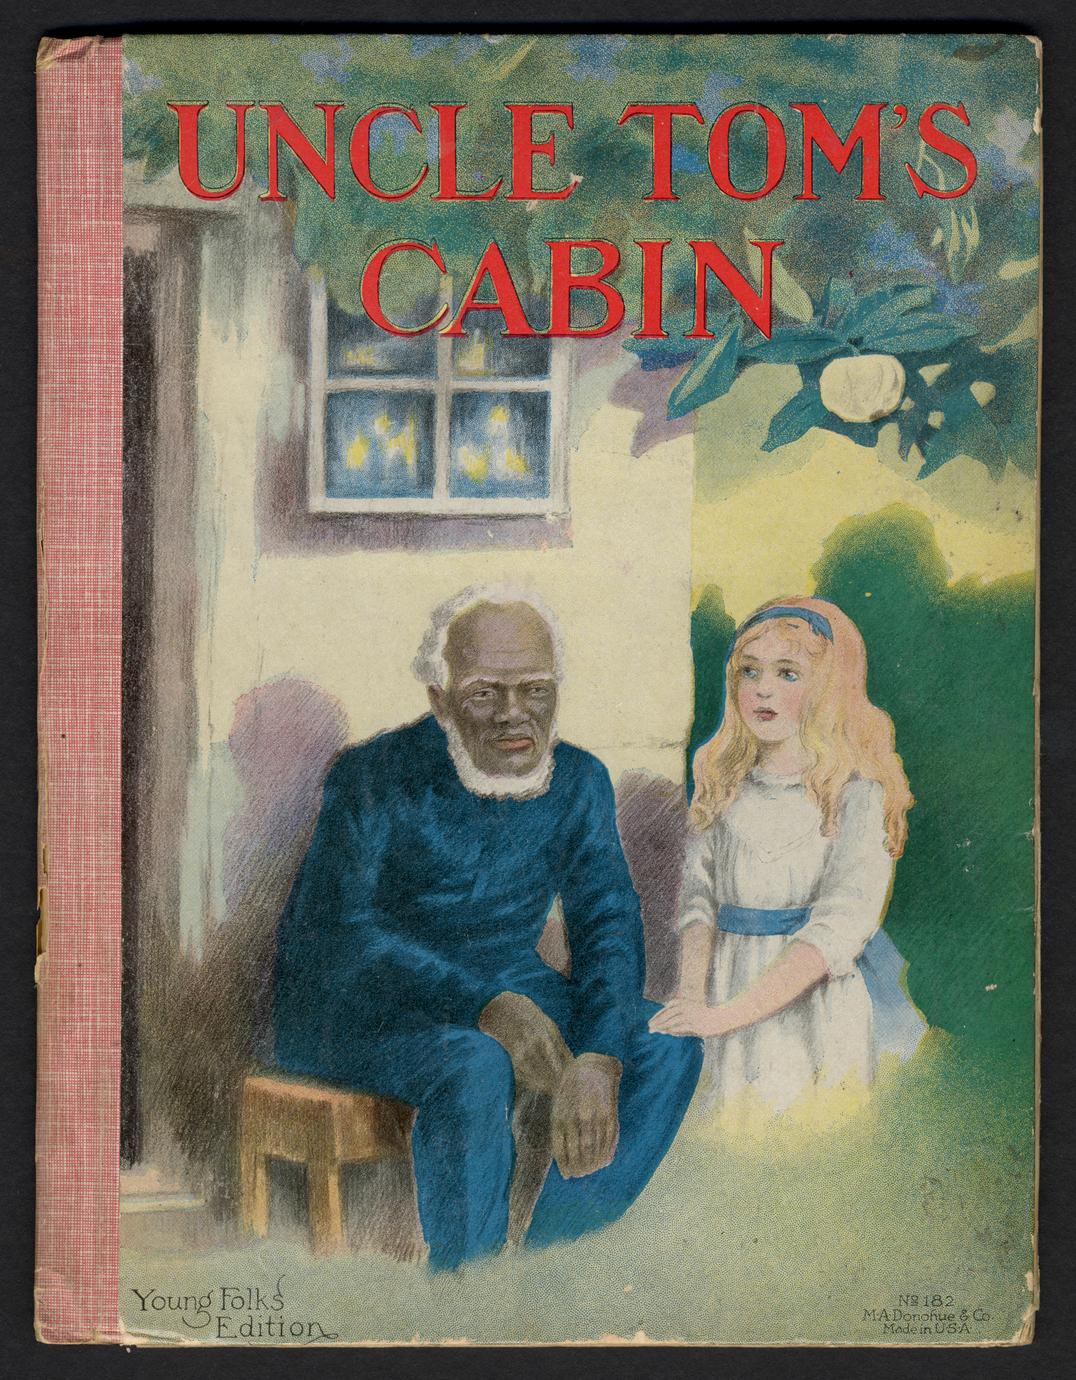 Uncle Tom's cabin (1 of 3)